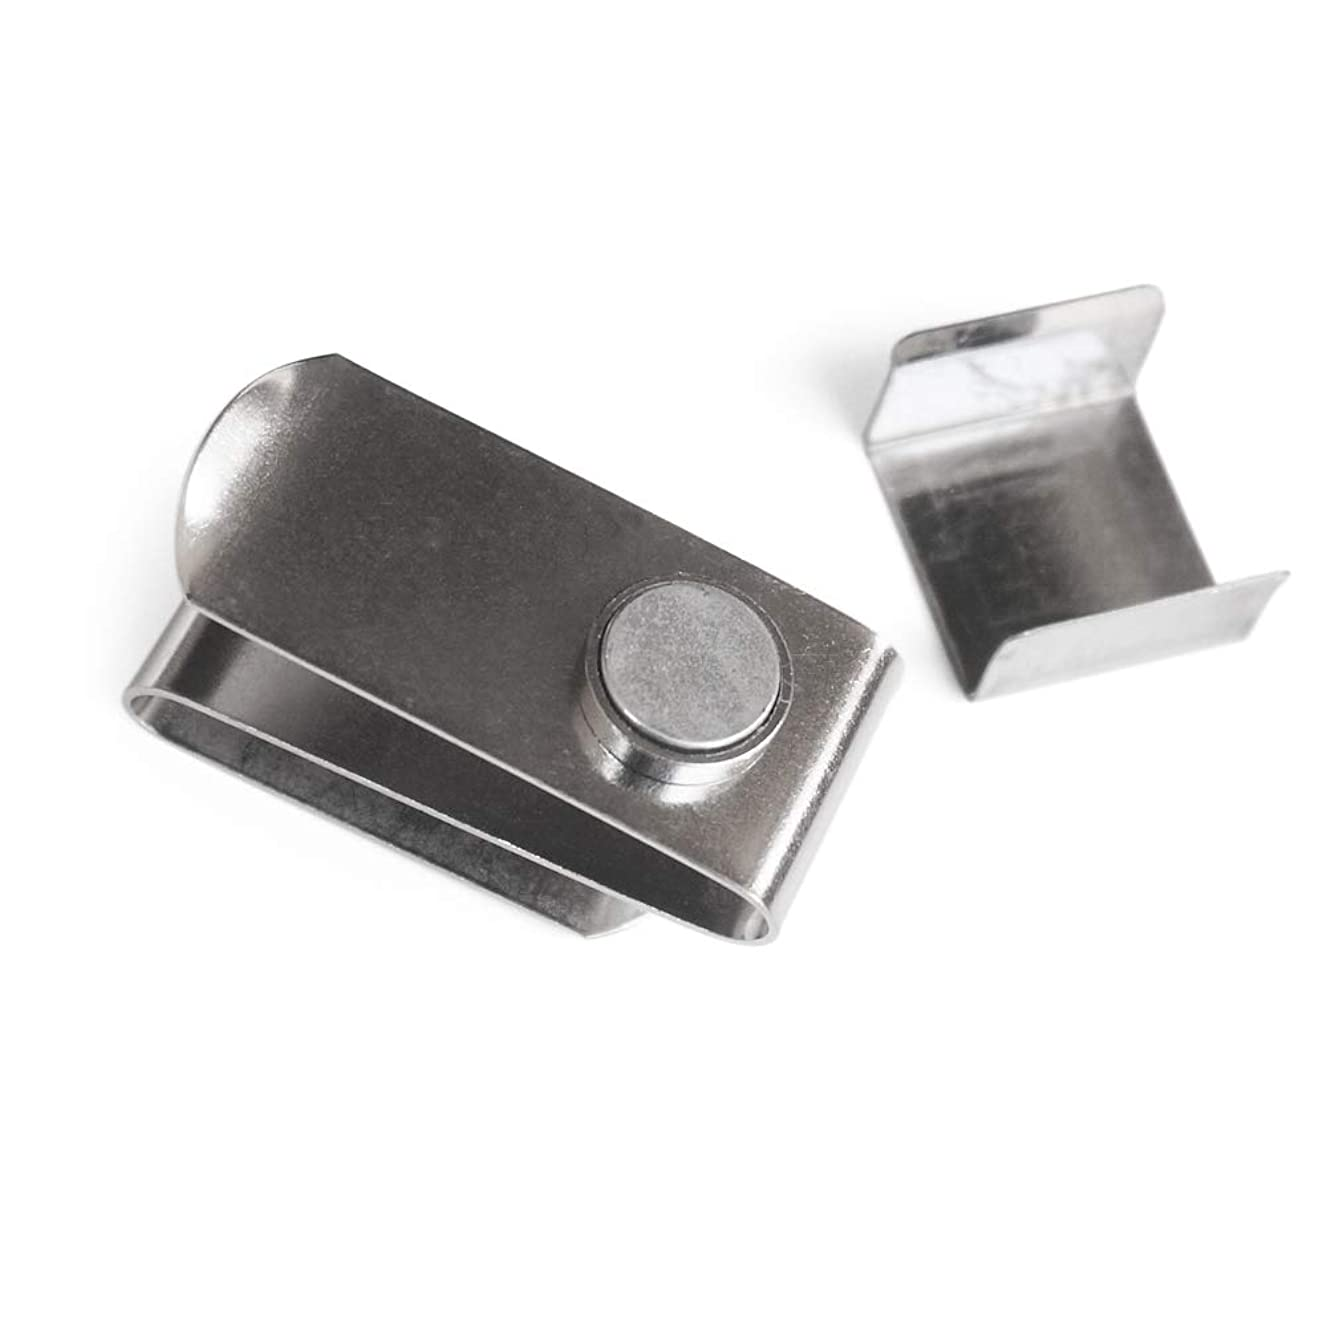 Walmeck Chalk Box Stainless Steel Cue Chalk Clip Snooker Billiards Chalk Holder Pool with Clip